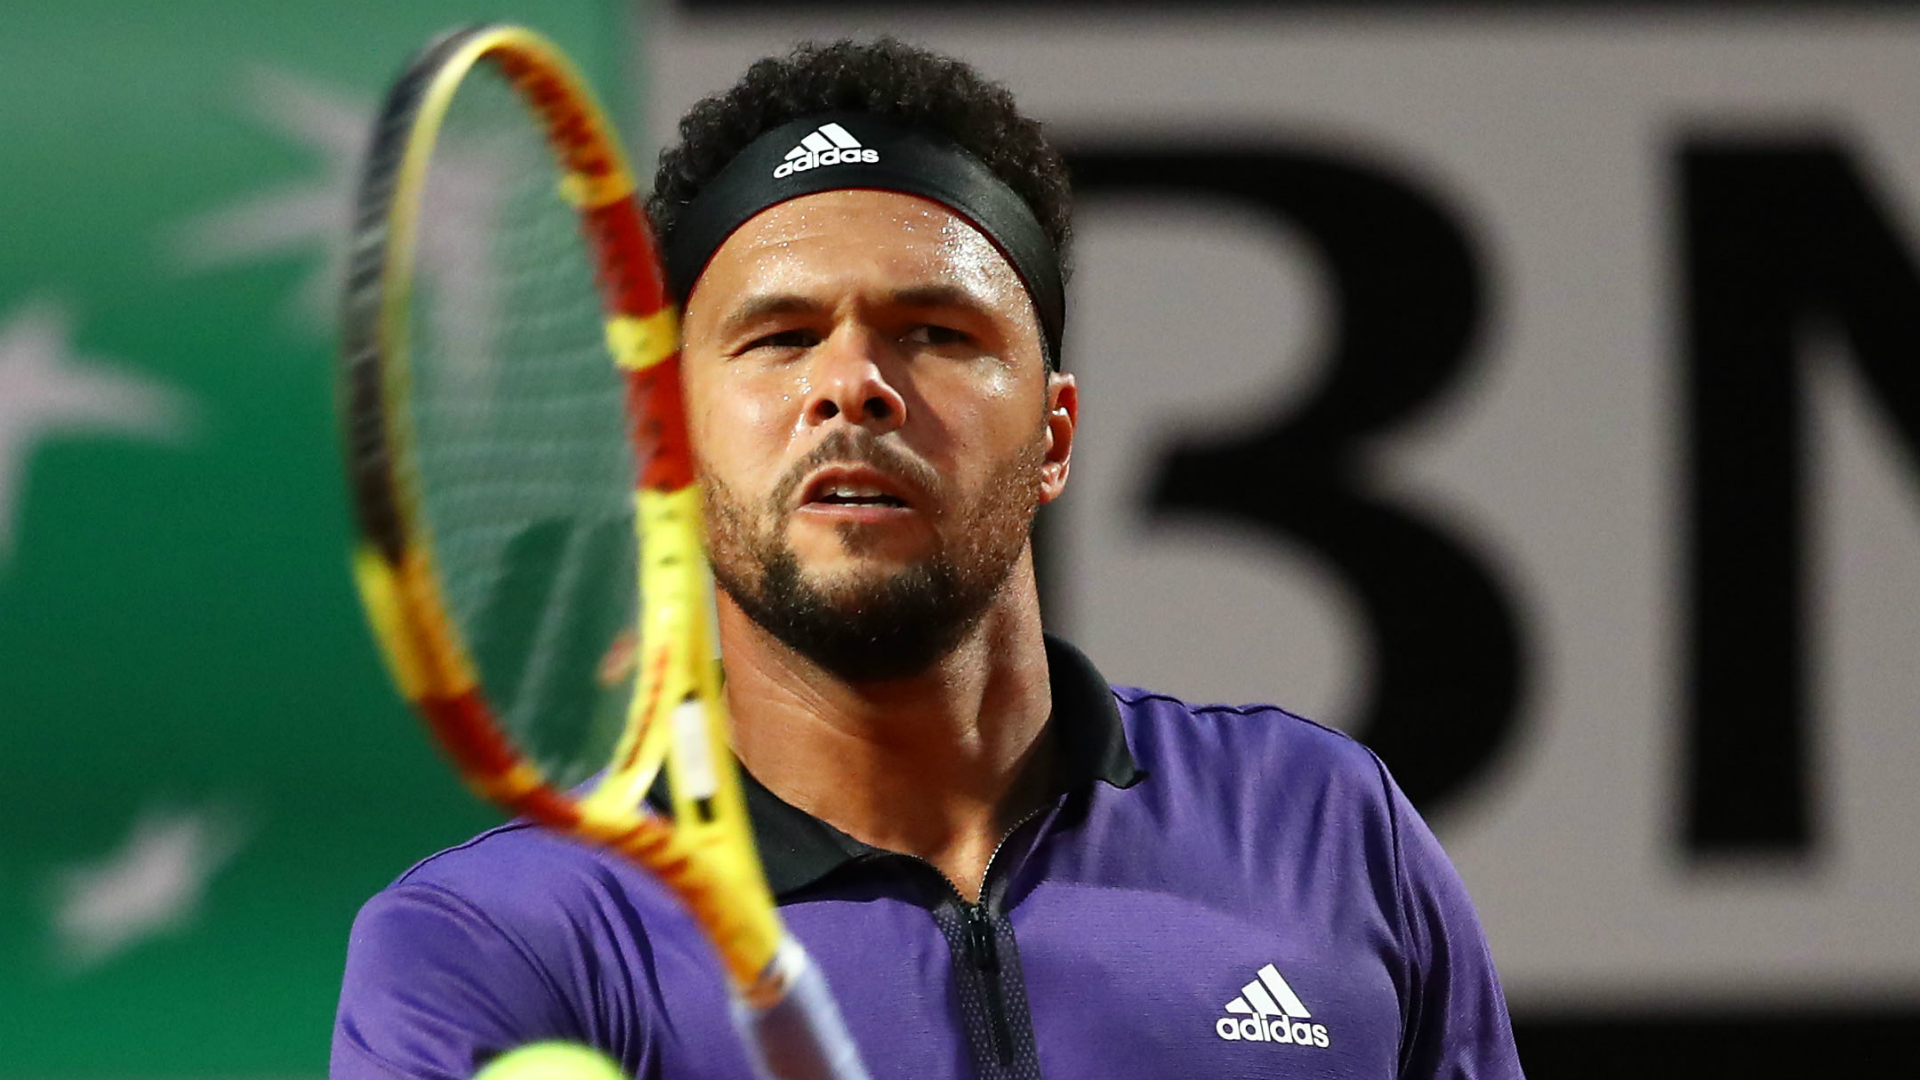 Tsonga topples Lajovic in Lyon